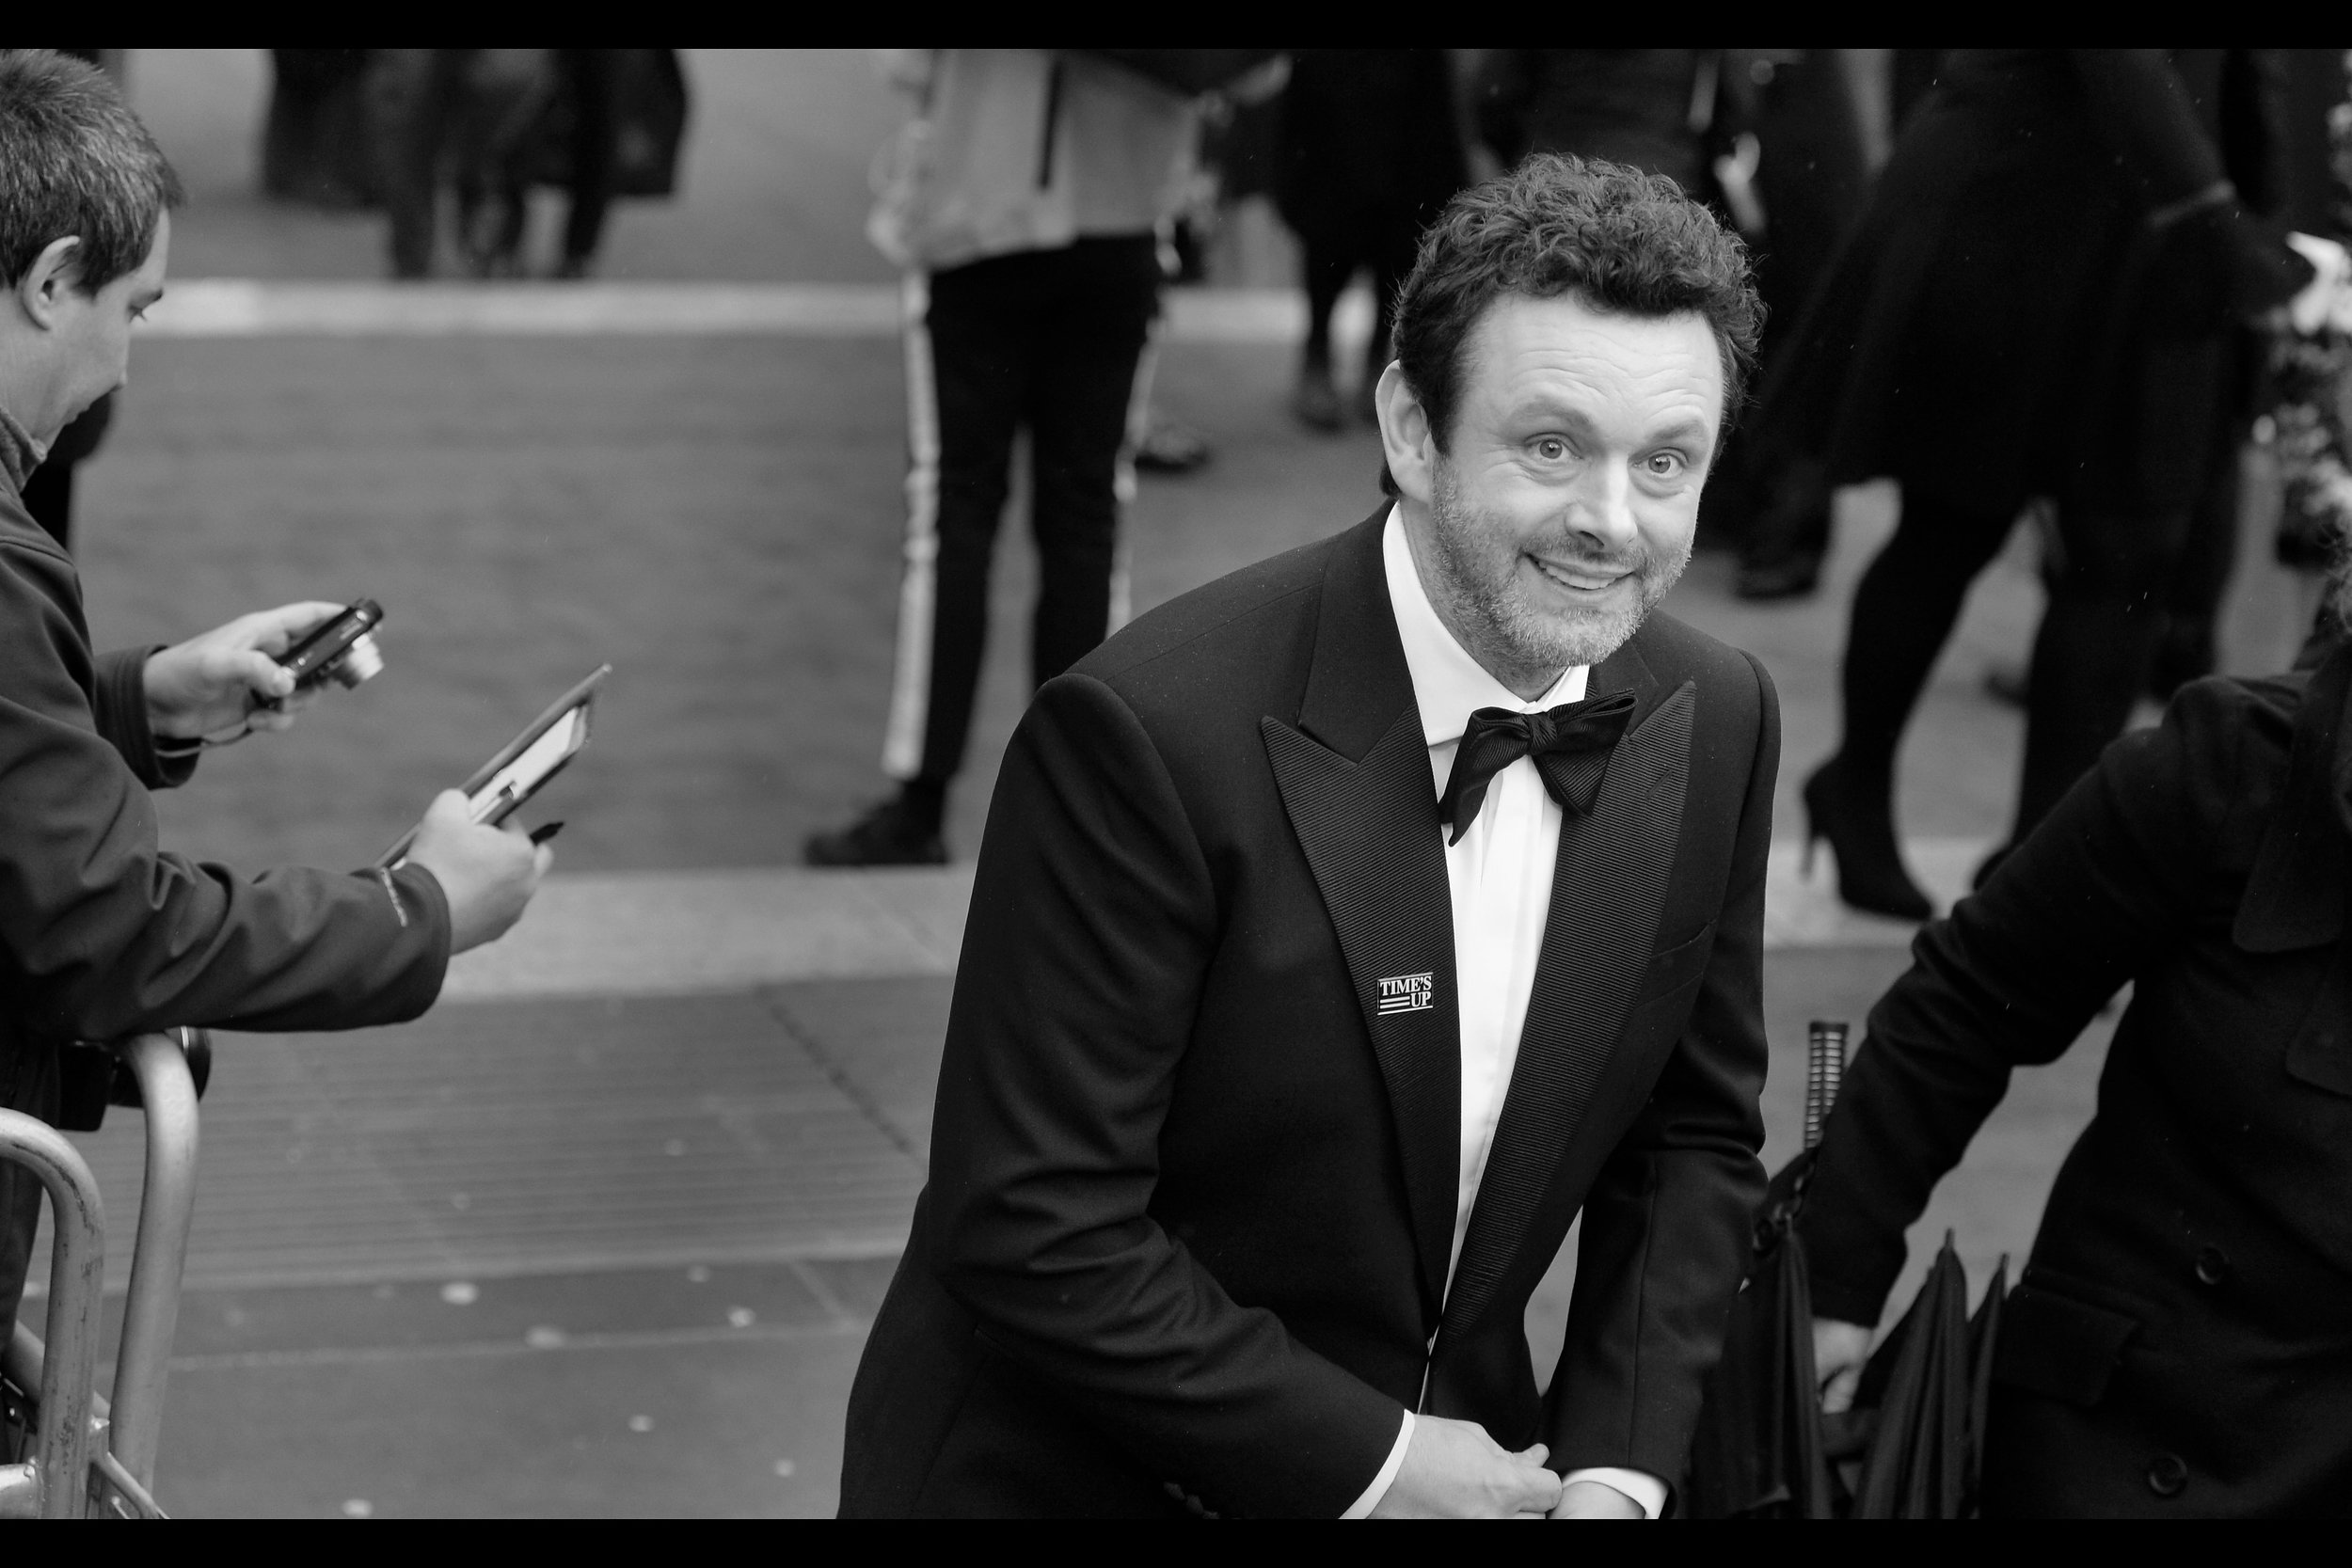 """""""You're welcome, of course""""  - Michael Sheen is both a fantastic serious actor in movies like Frost/Nixon and The Damned United.... as well as a fantastic comedic actor pitch-perfect in such movies as several Twilight films and Tron Legacy."""